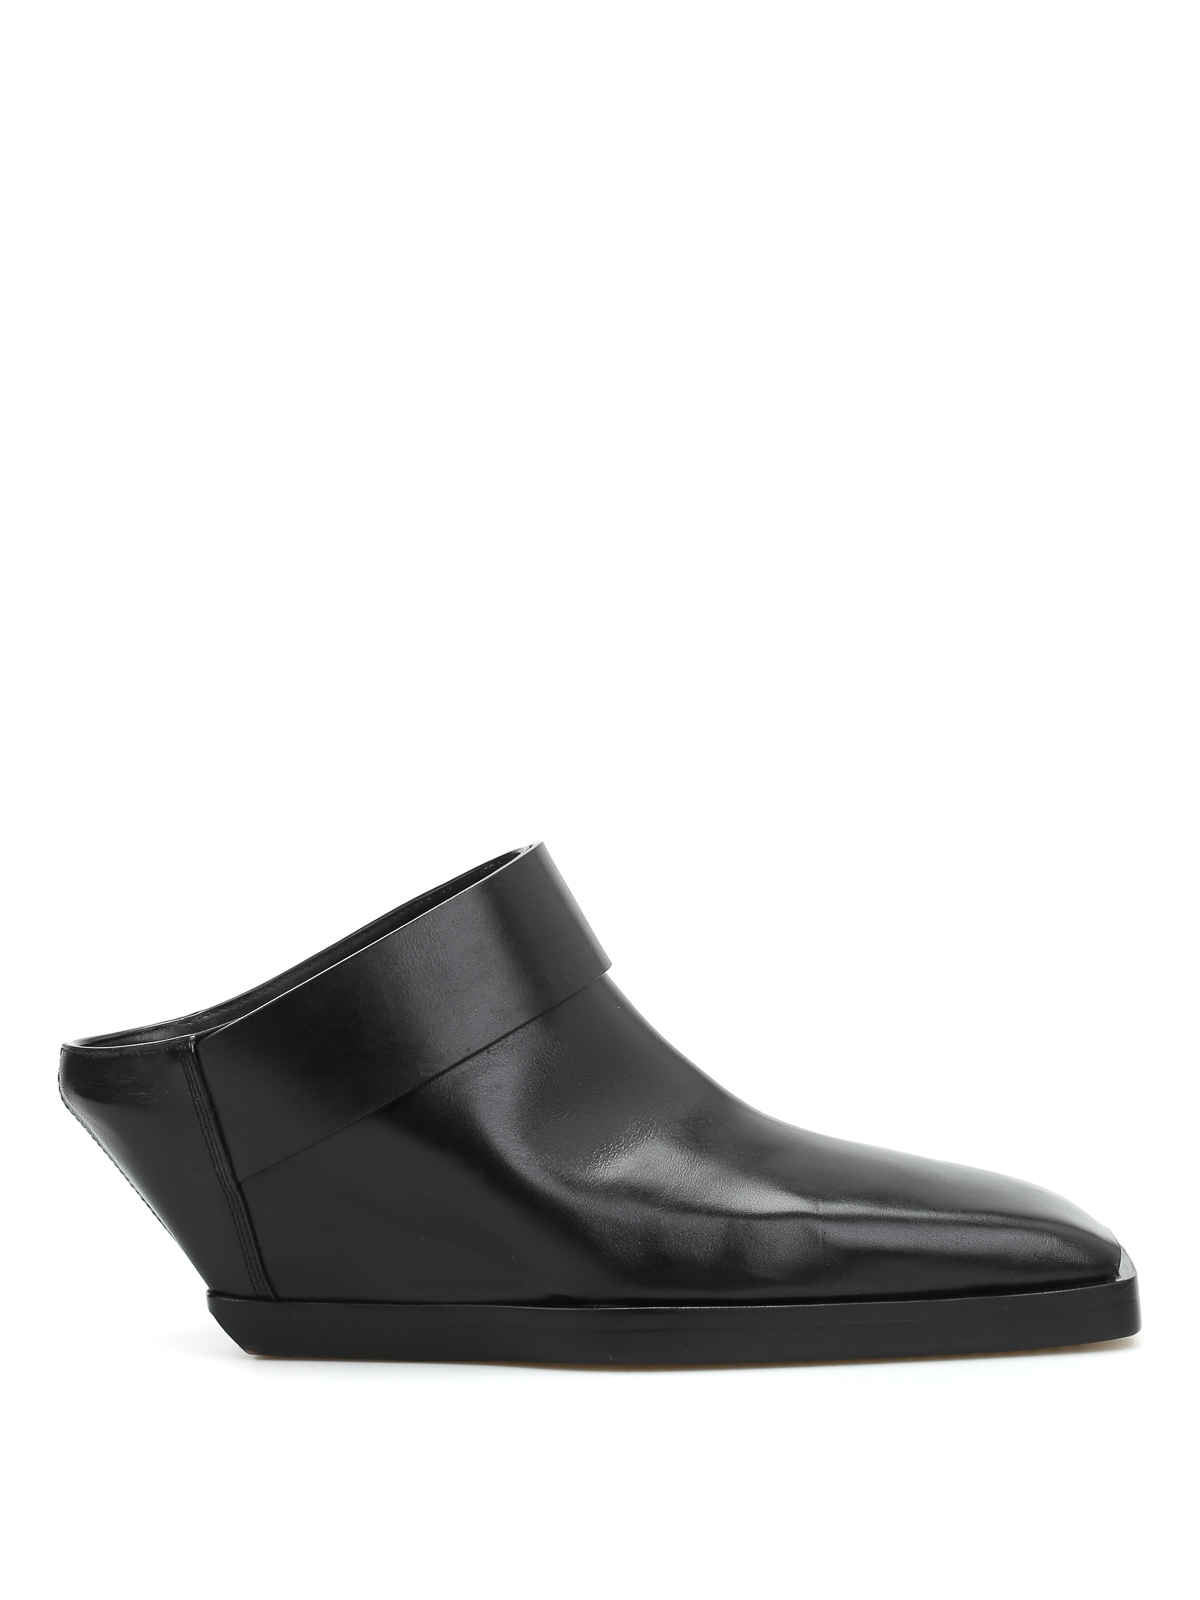 Chaussures - Mules Rick Owens tN1dB